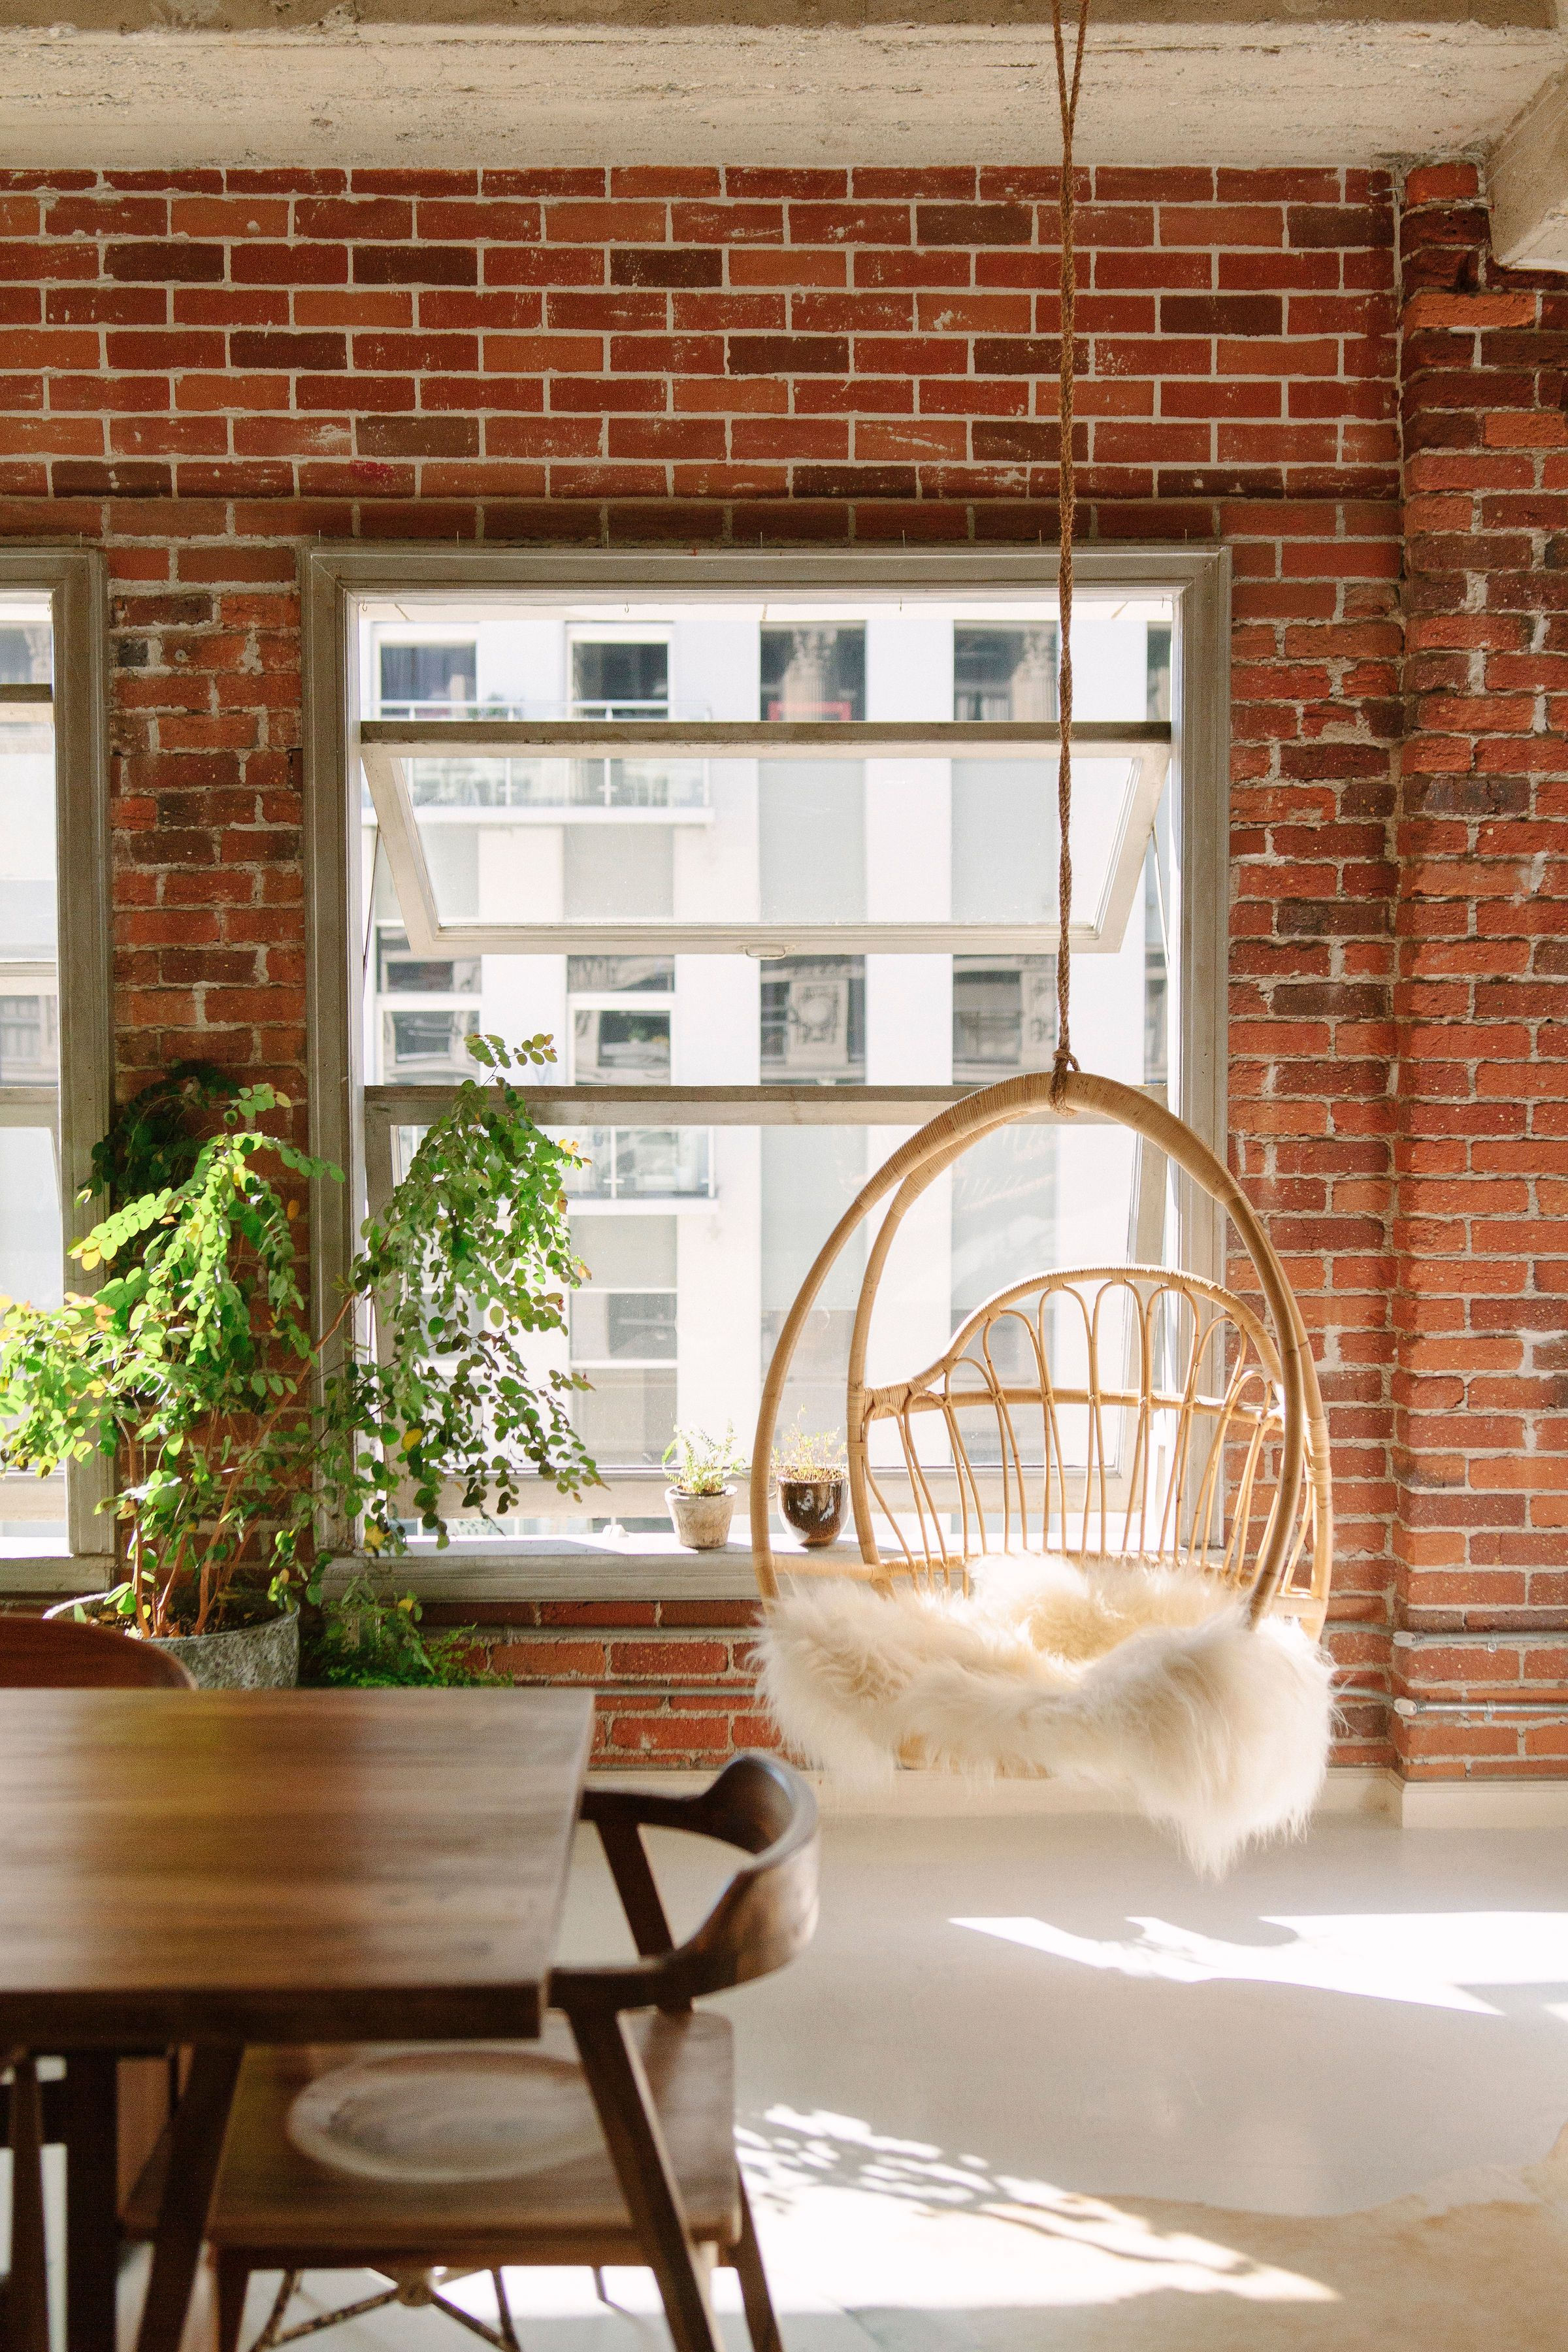 Large Windows With Views Of Downtown La Exposed Brick And A Hanging Chair Click To See The Rest Of This Indust Loft Decor Exposed Brick Boho Loft Apartment